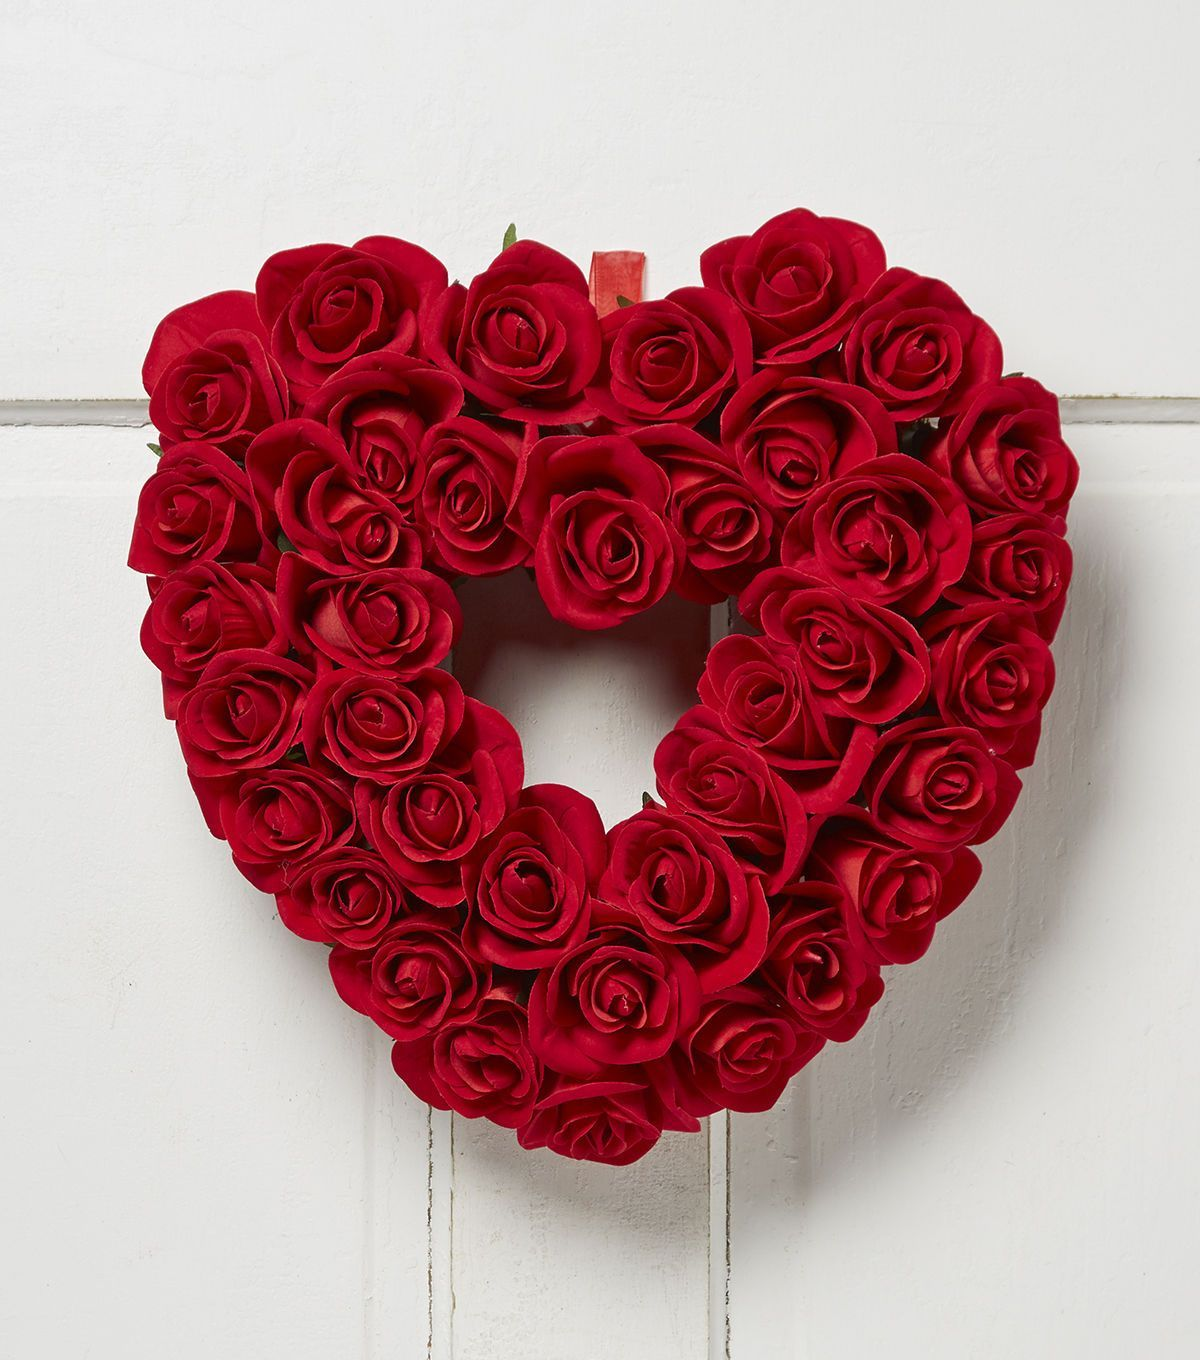 Valentines day rose heart wreath red valentines day with joann valentines day rose heart wreath red for the front door rubansaba